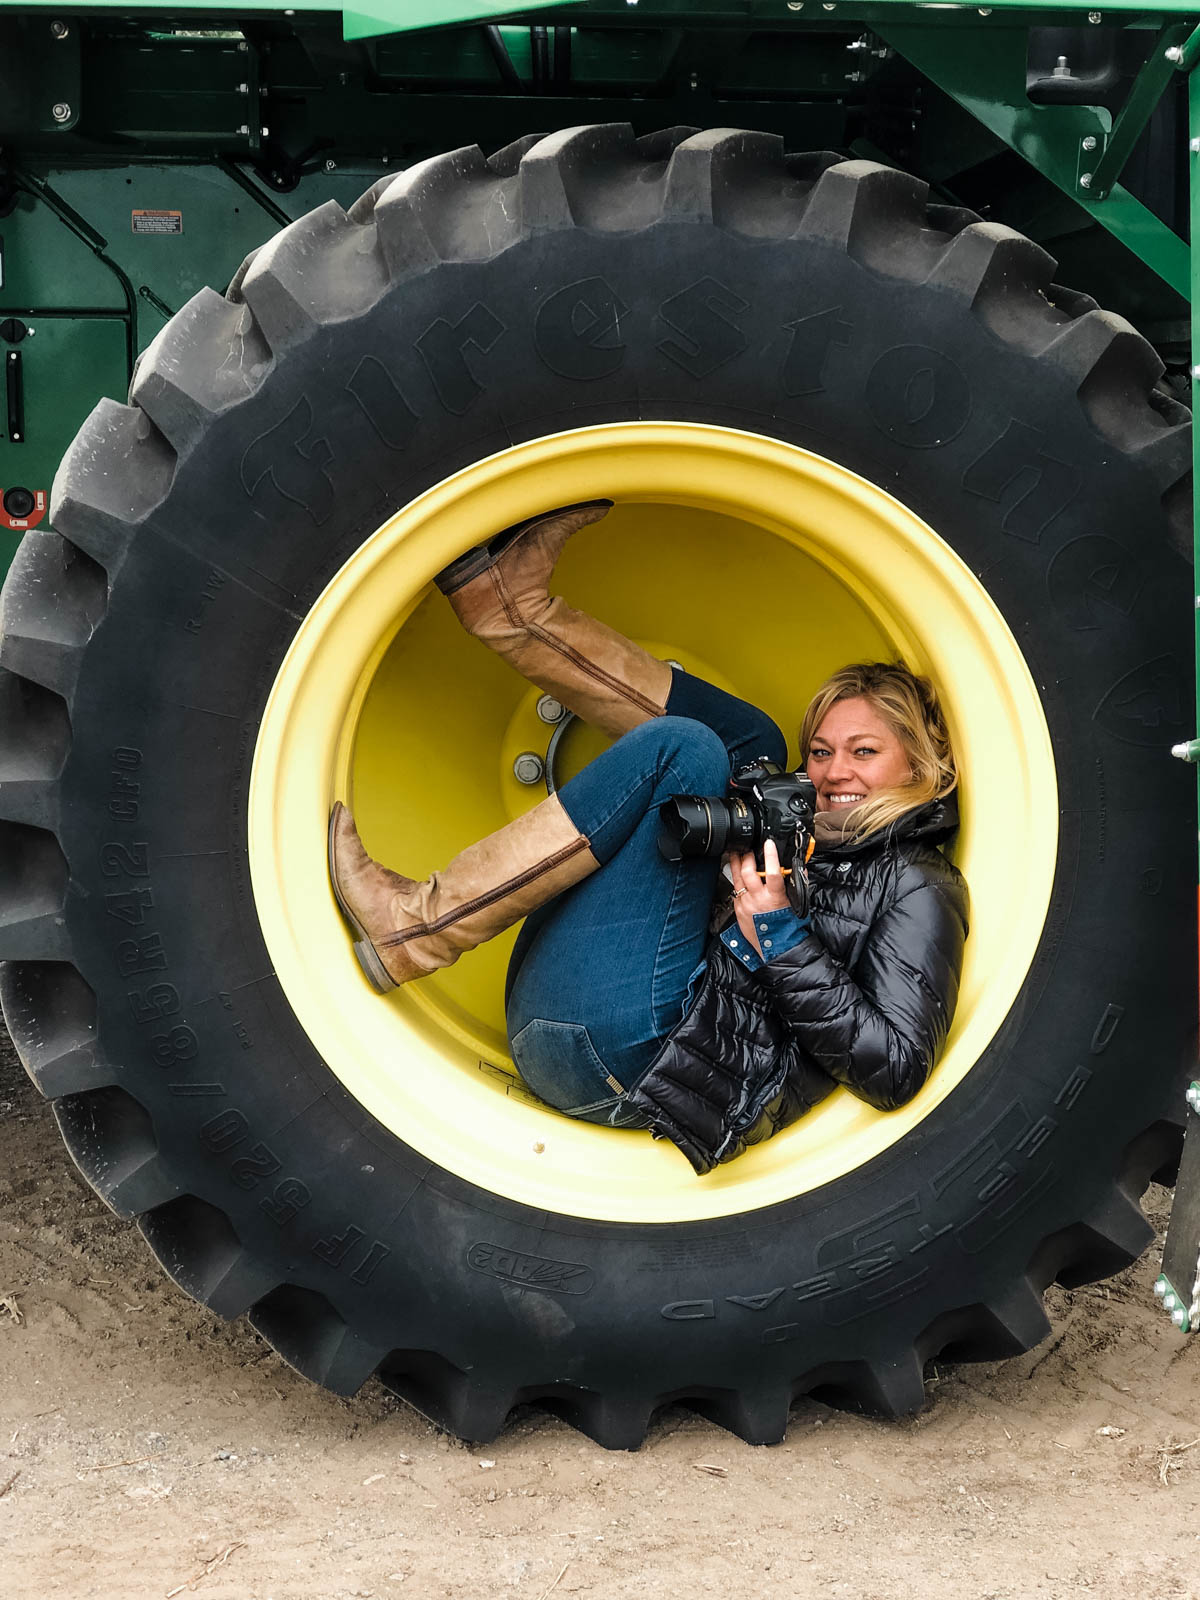 Dawn Heumann, Photographer tire